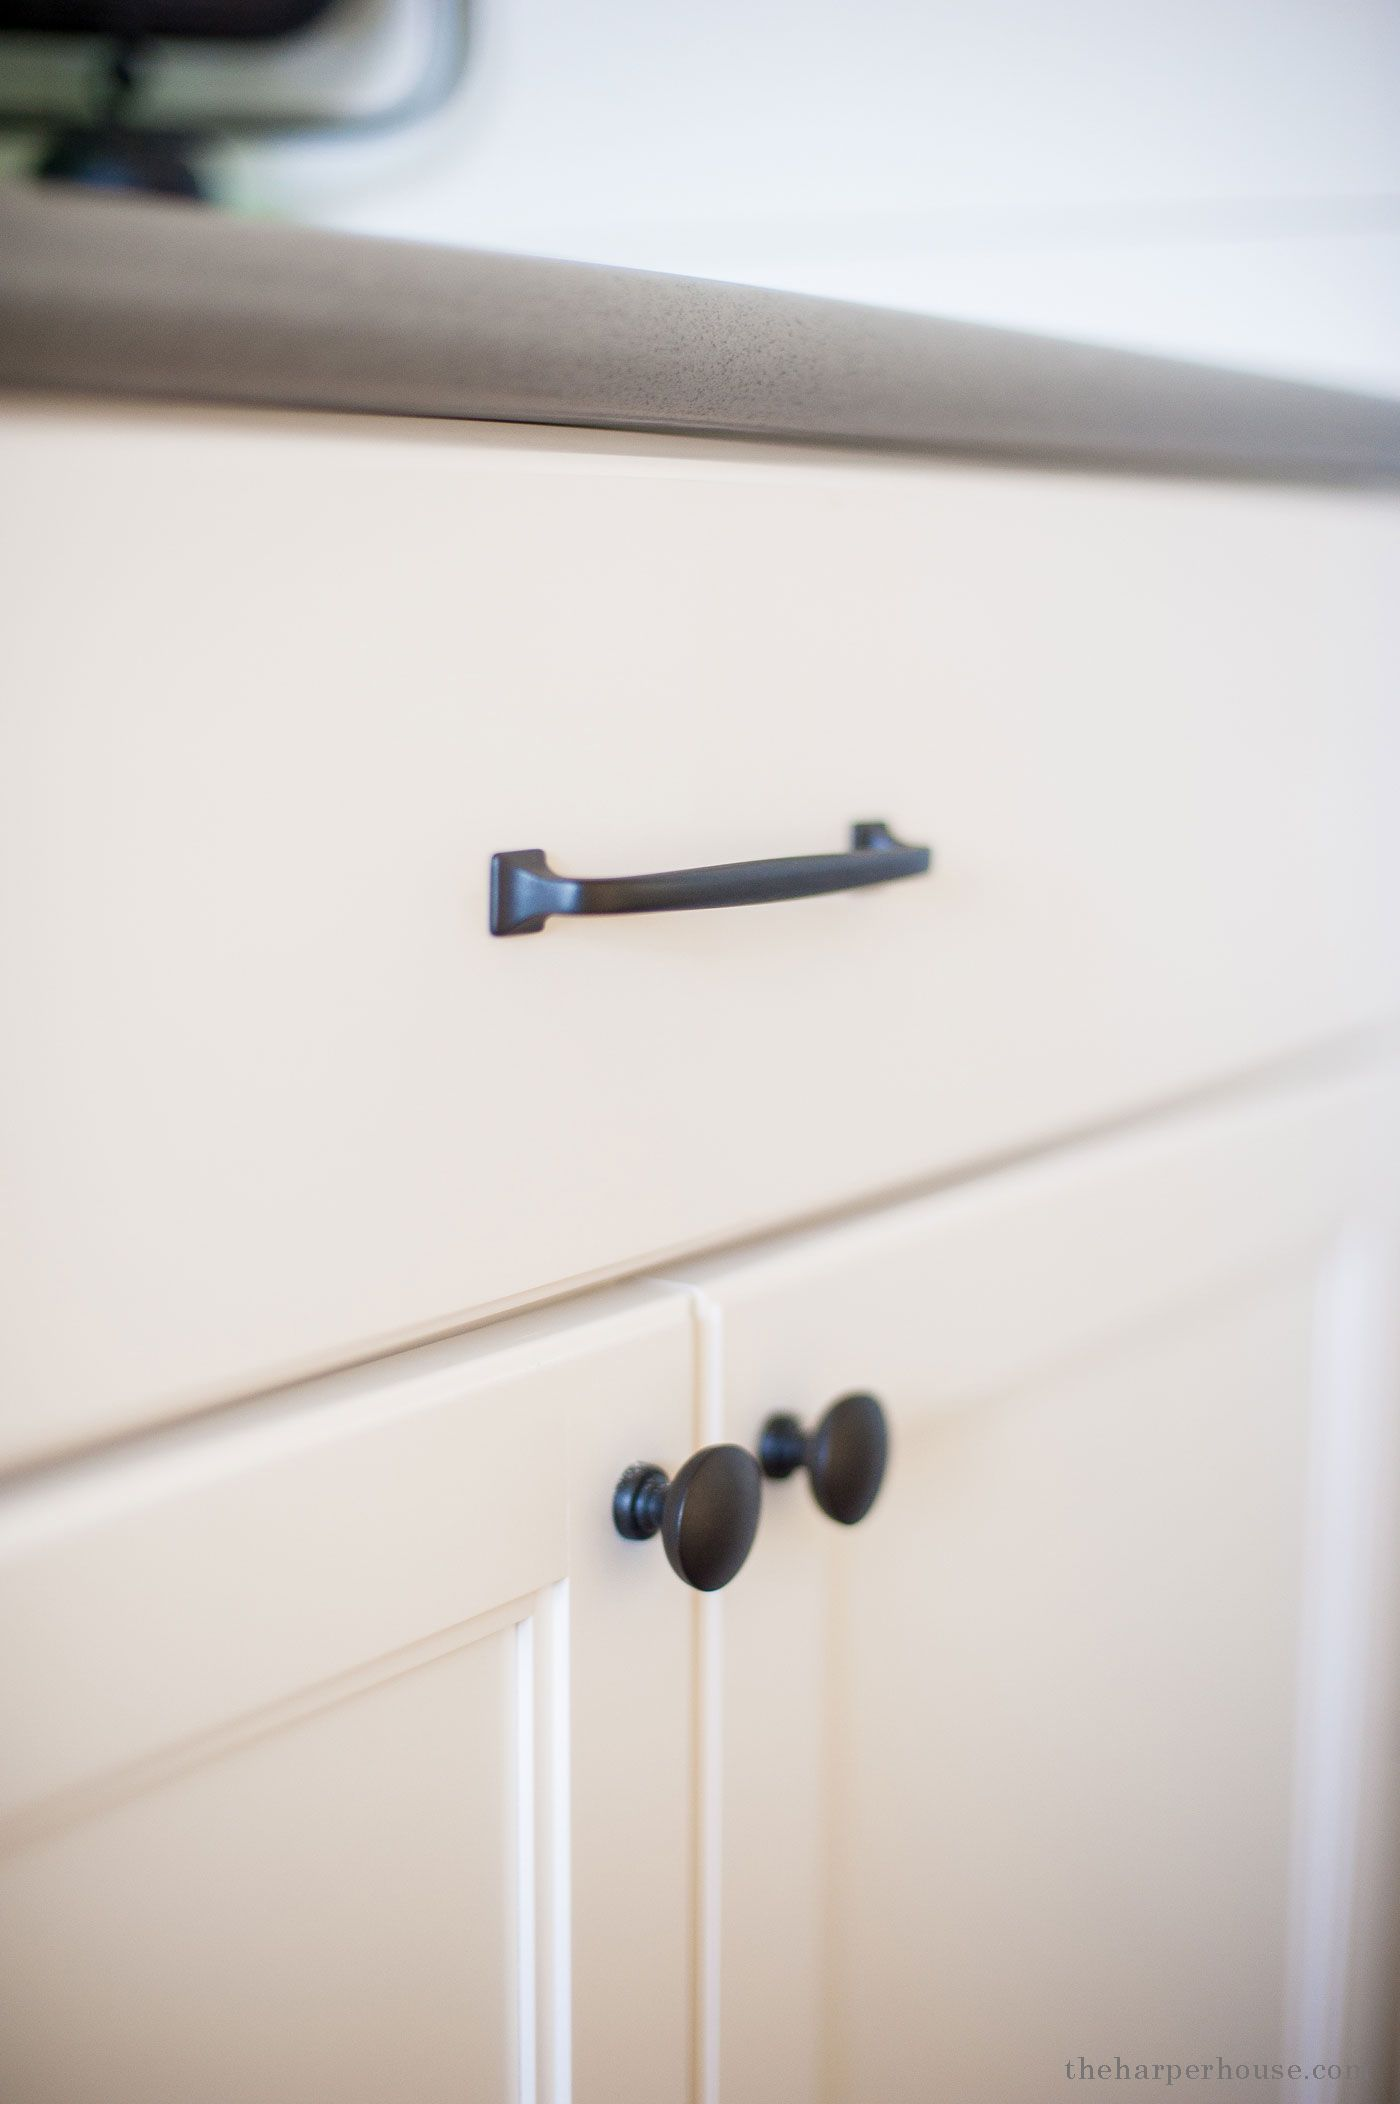 kitchen pulls cabinets from china modern farmhouse details best of the harper house 5 cabinet amazon for only 2 70 www theharperhouse com